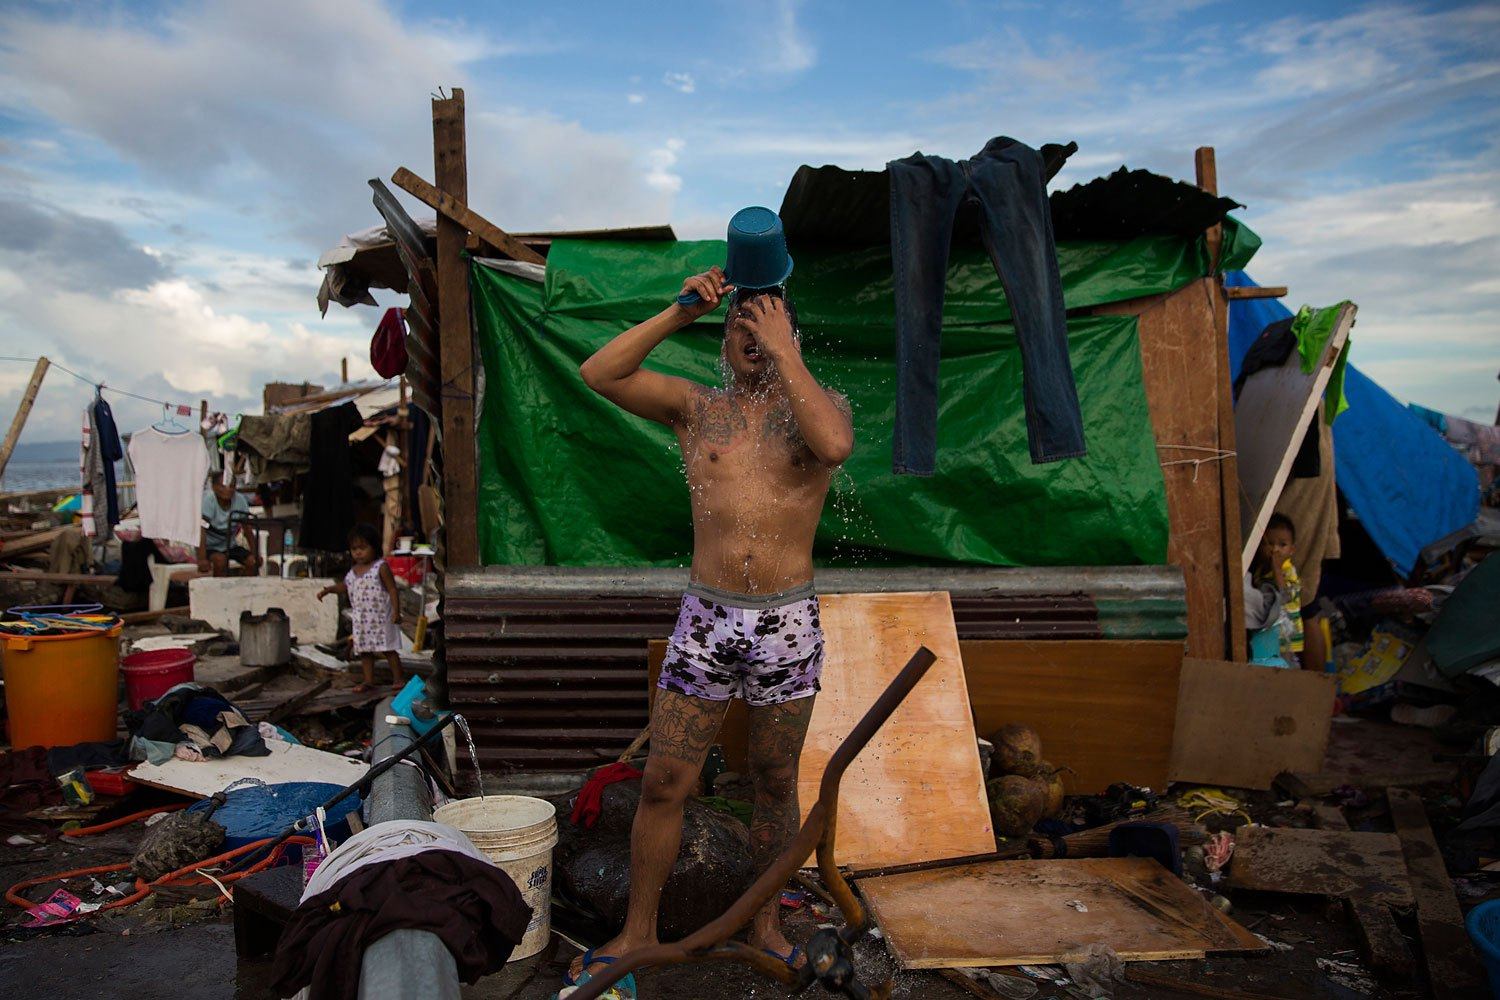 A man washes outside his temporary home on the site of his former home that was destroyed by Haiyan Typhoon in Tacloban, Philippines on November 13, 2013.